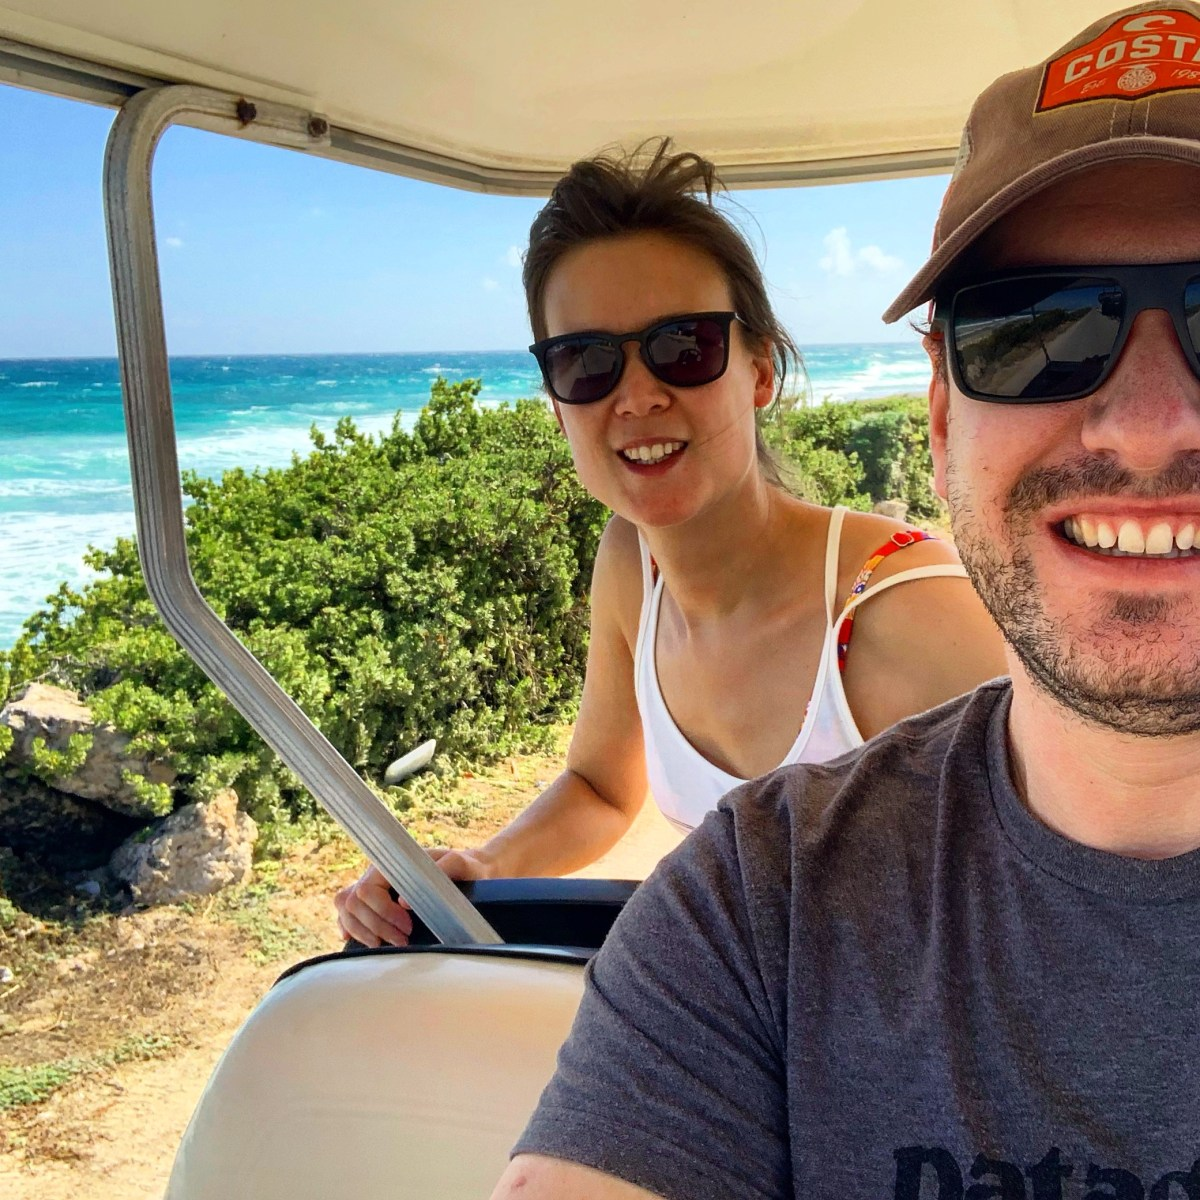 On the golf buggy, Isla Mujeres, Mexico